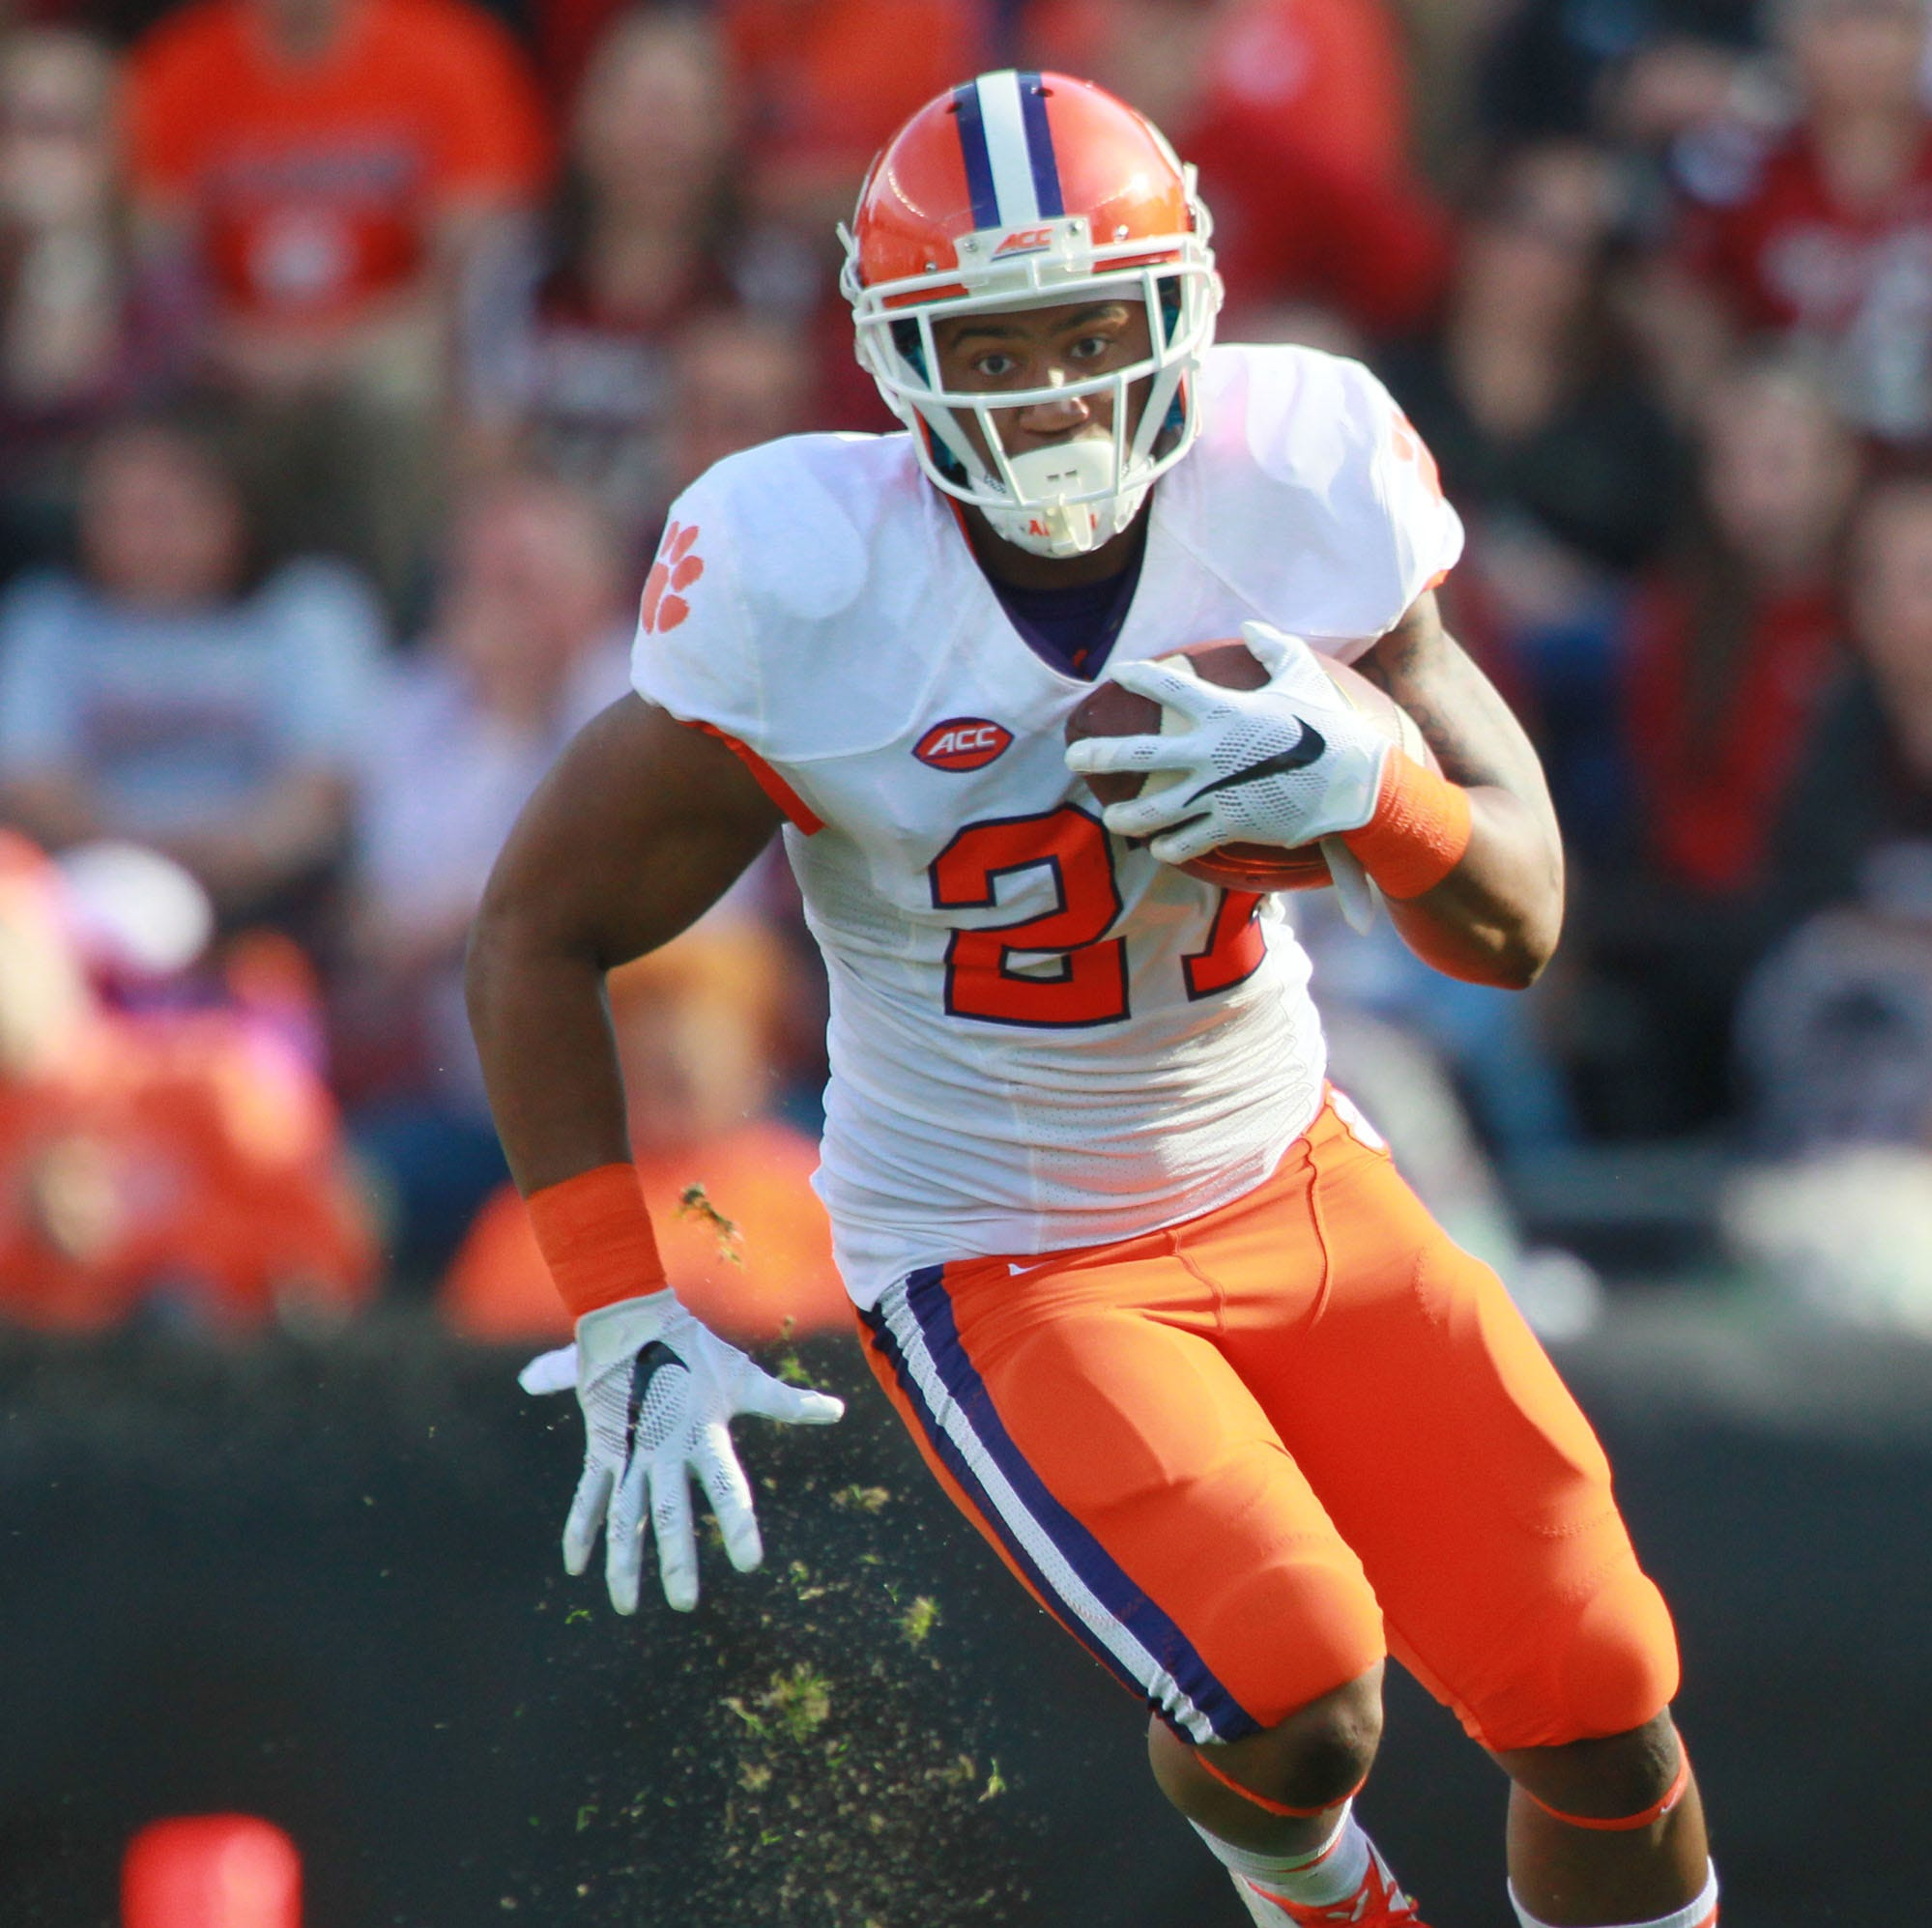 Ex-Clemson football player C.J. Fuller's legacy is a foundation giving back to community